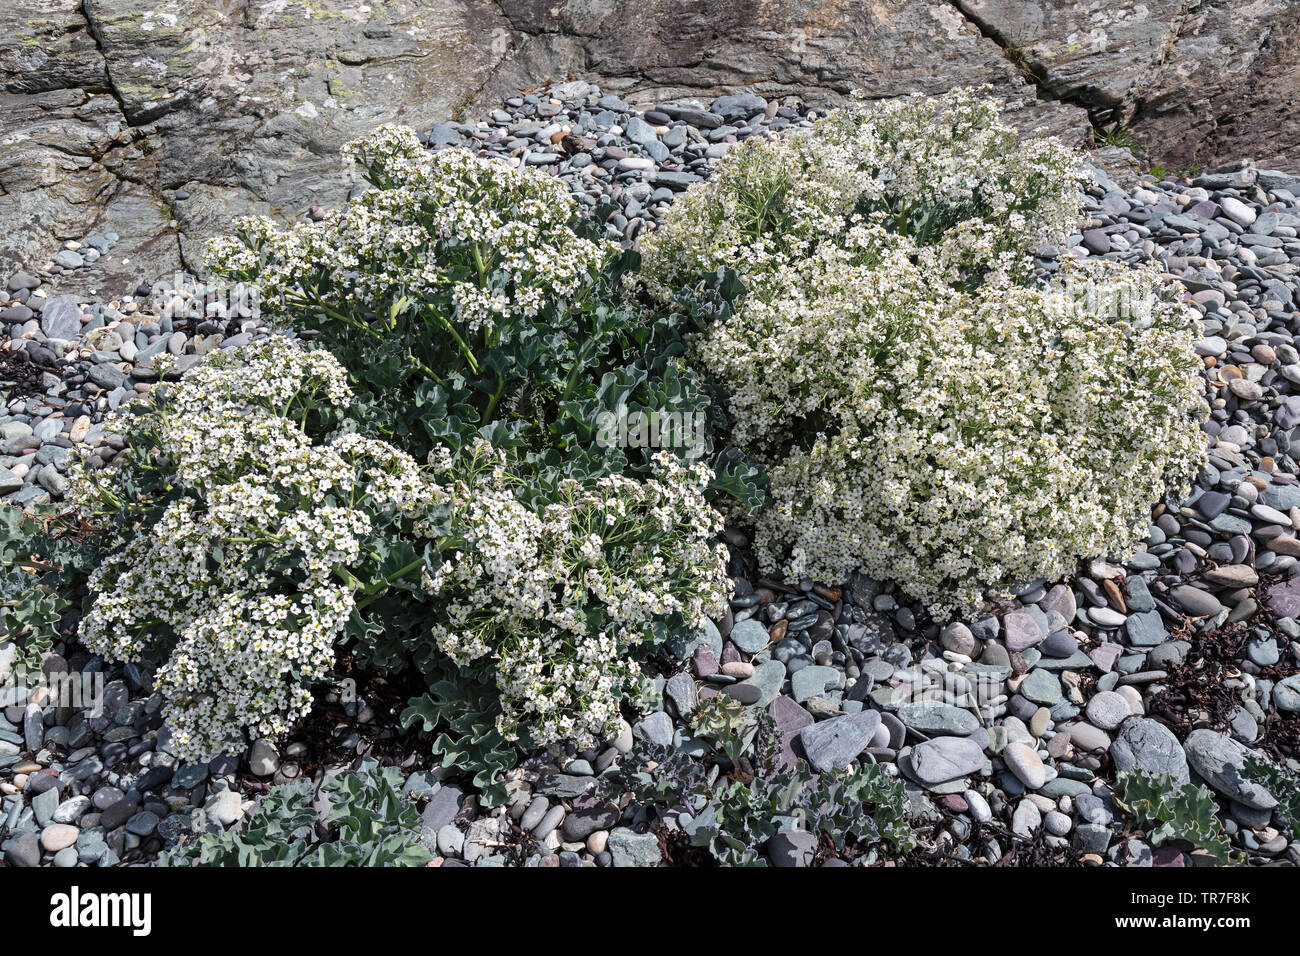 Crambe Maritima, commonly known as Sea Kale, Seakale, Sea Cole, Sea colewort. Photograph taken on the Island of Anglesey in North Wales. - Stock Image